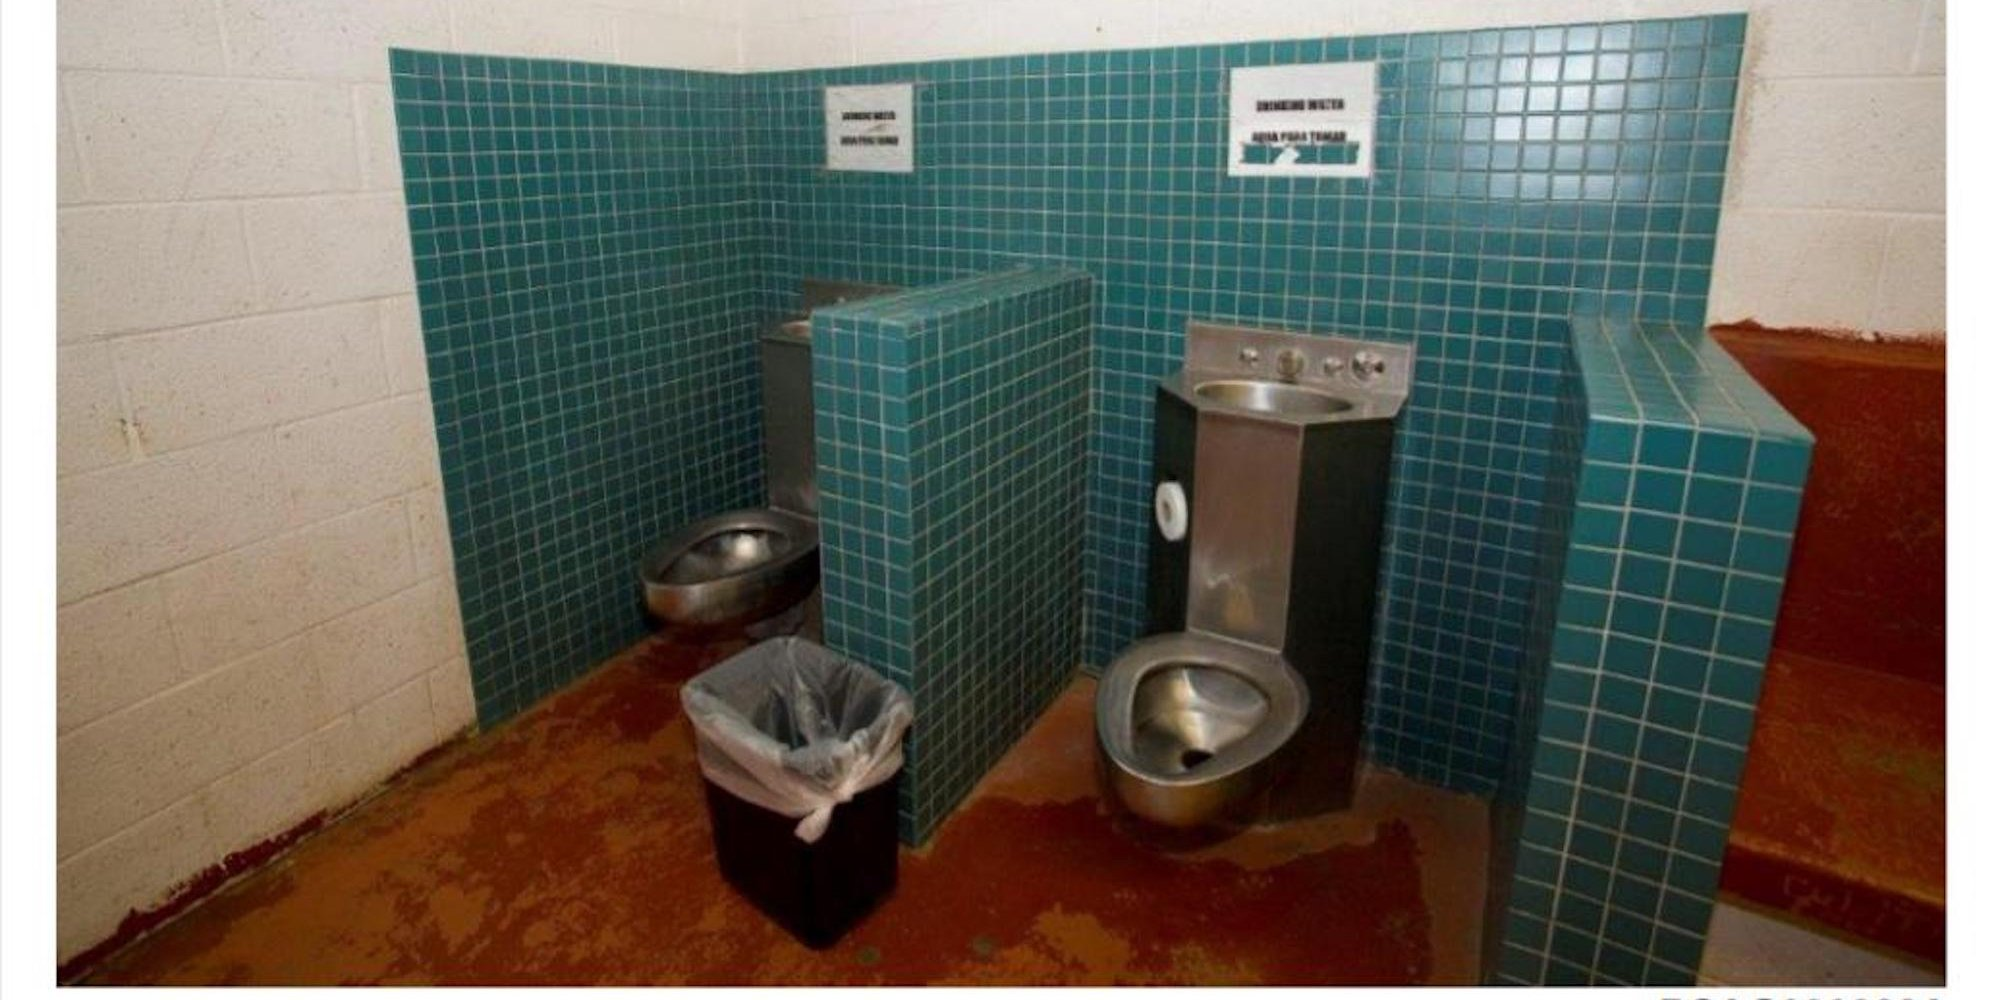 Photo shows hybrid of toilet and drinking fountain in